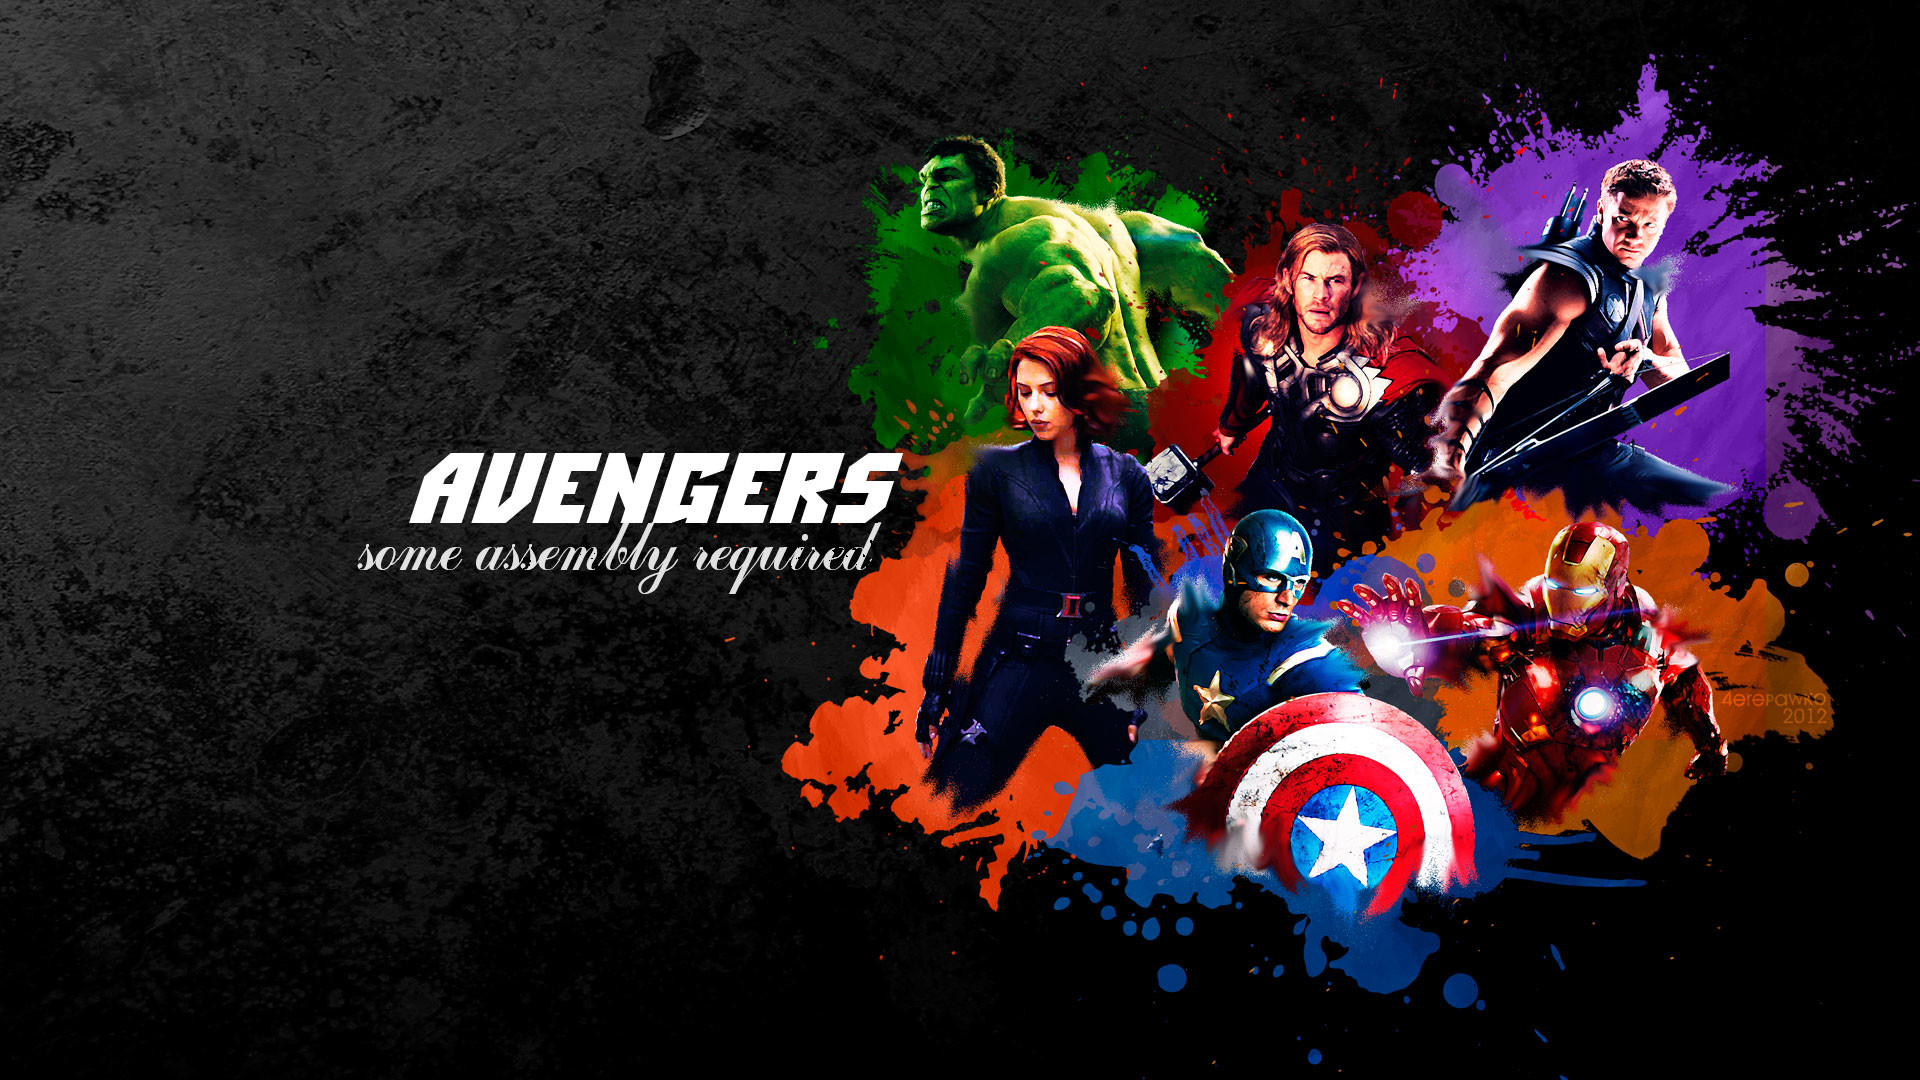 1920x1080 Avengers wallpapers HD free download.